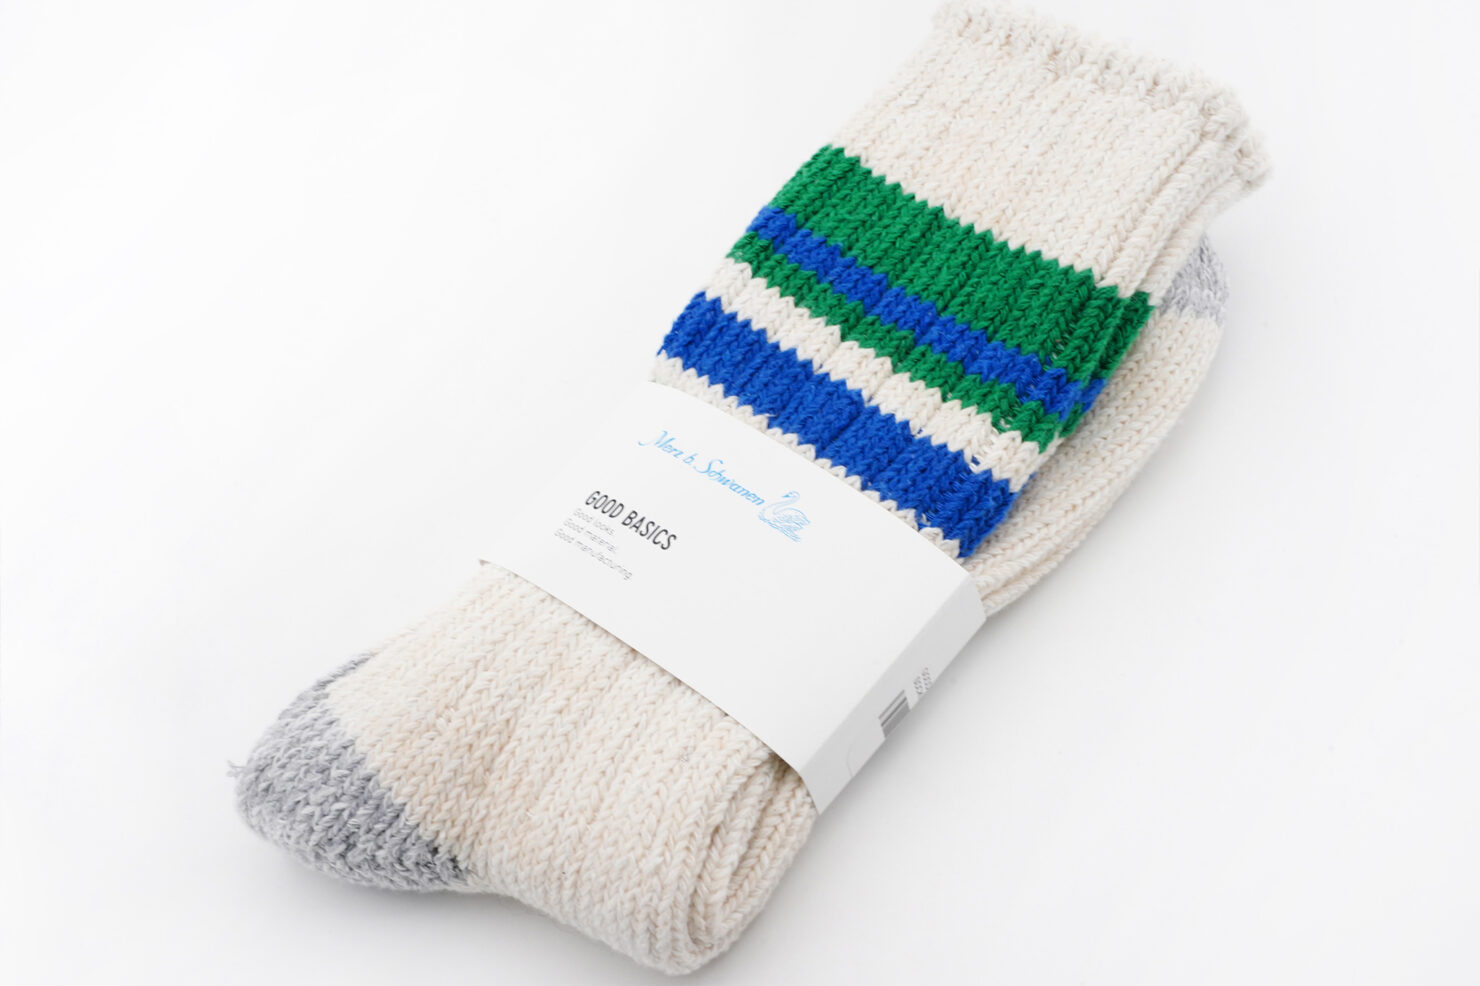 GOOD BASICS SOCKS NATURE-GRASS - MERZ B. SCHWANEN